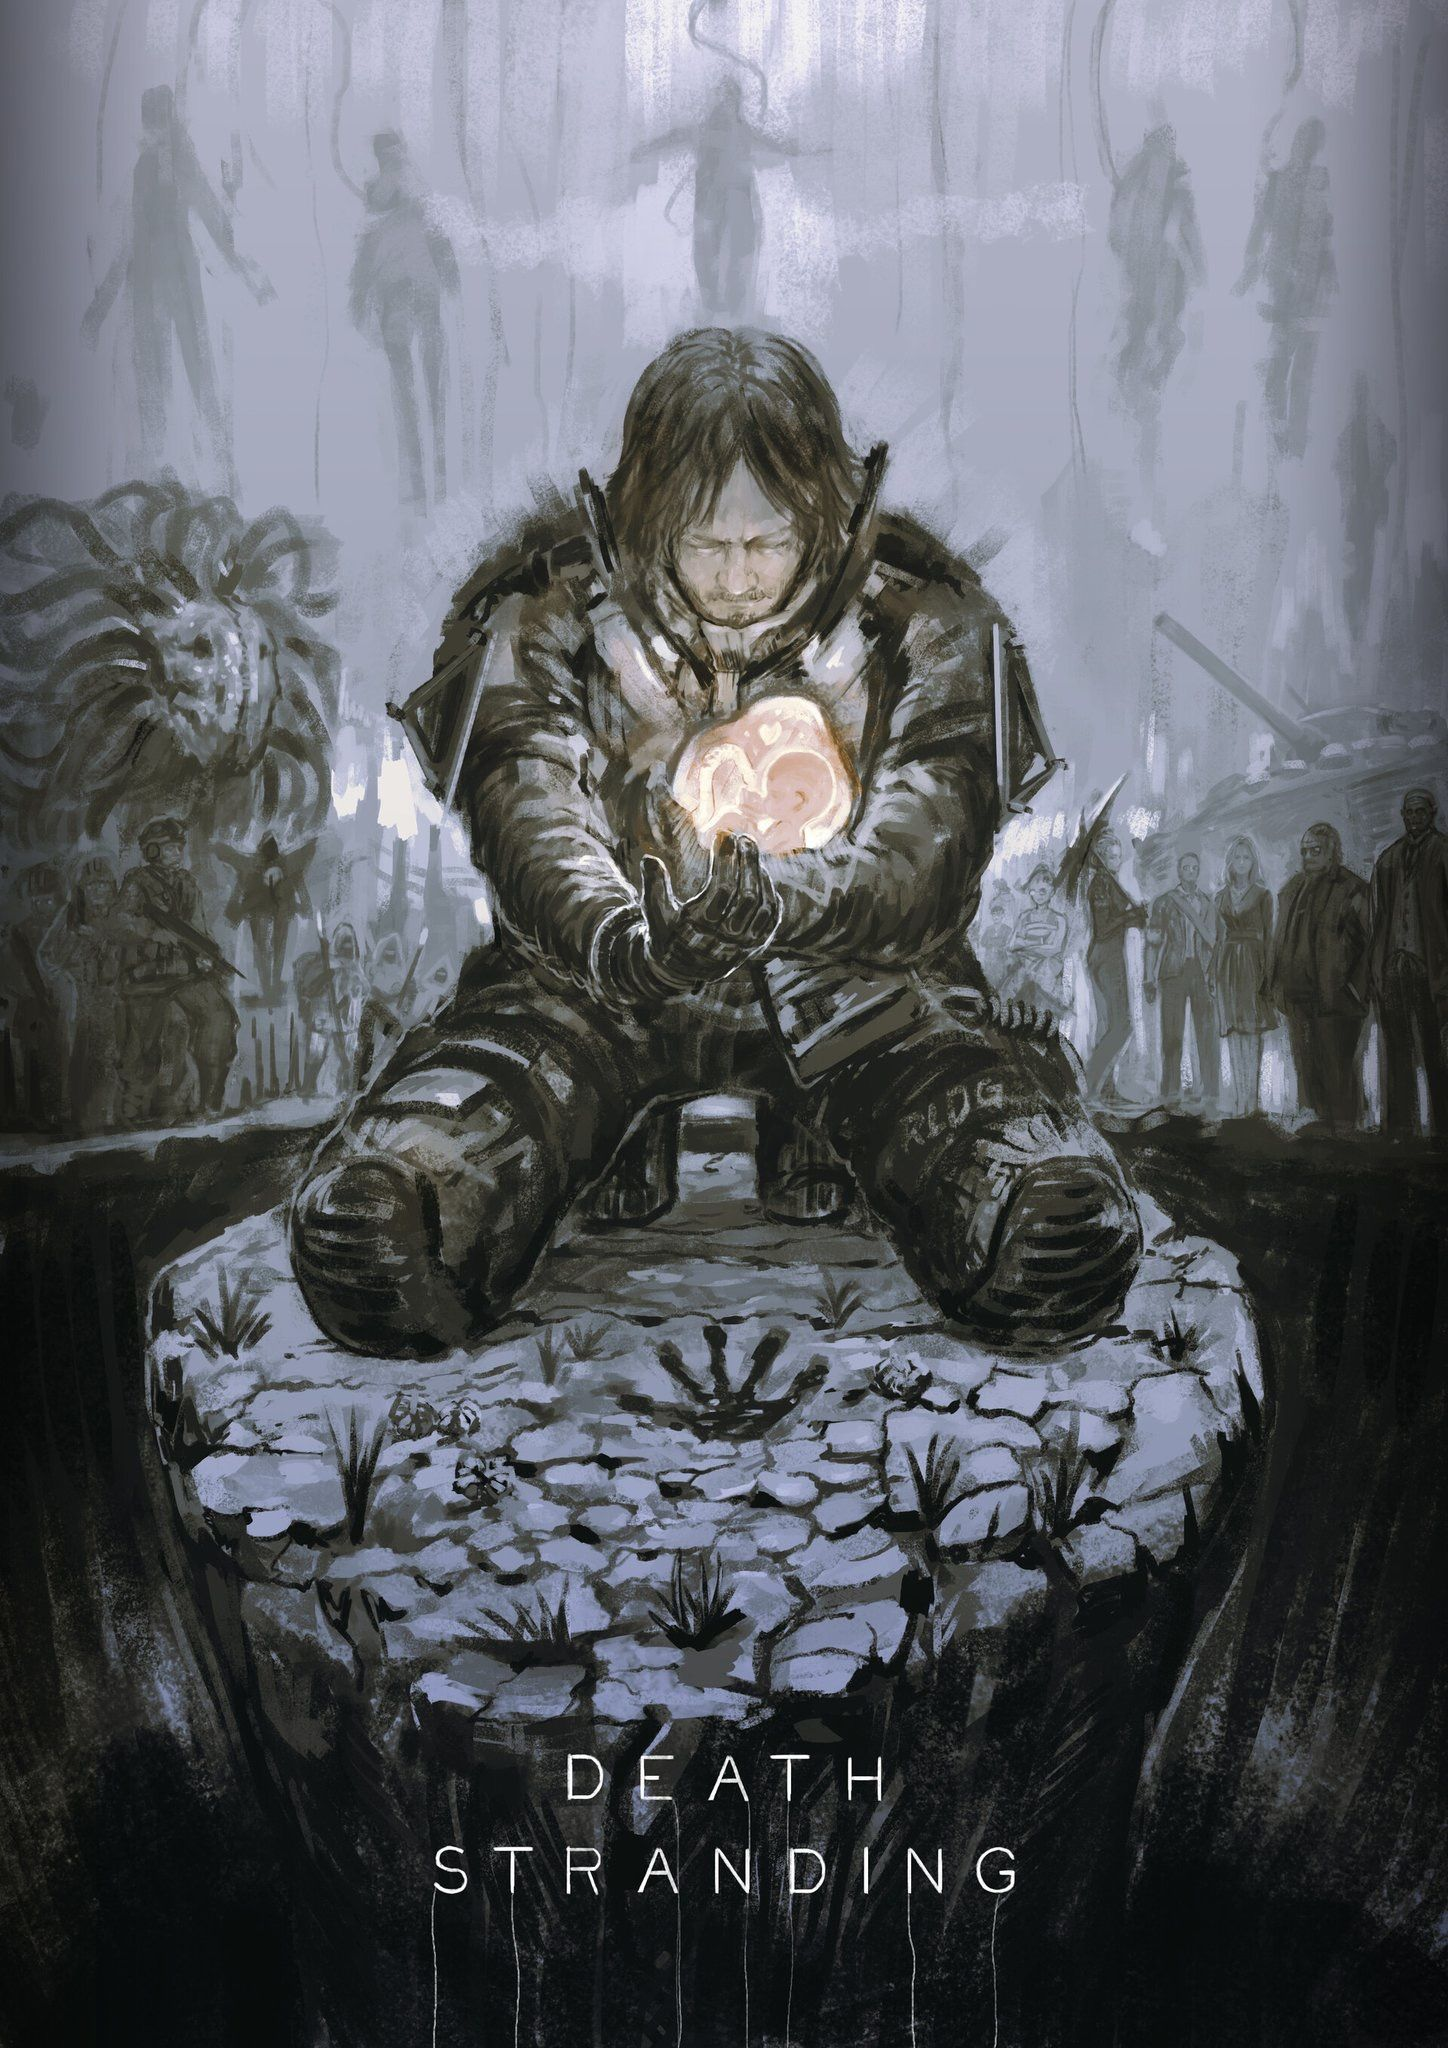 Death Stranding image by Anna Miller Pop culture art